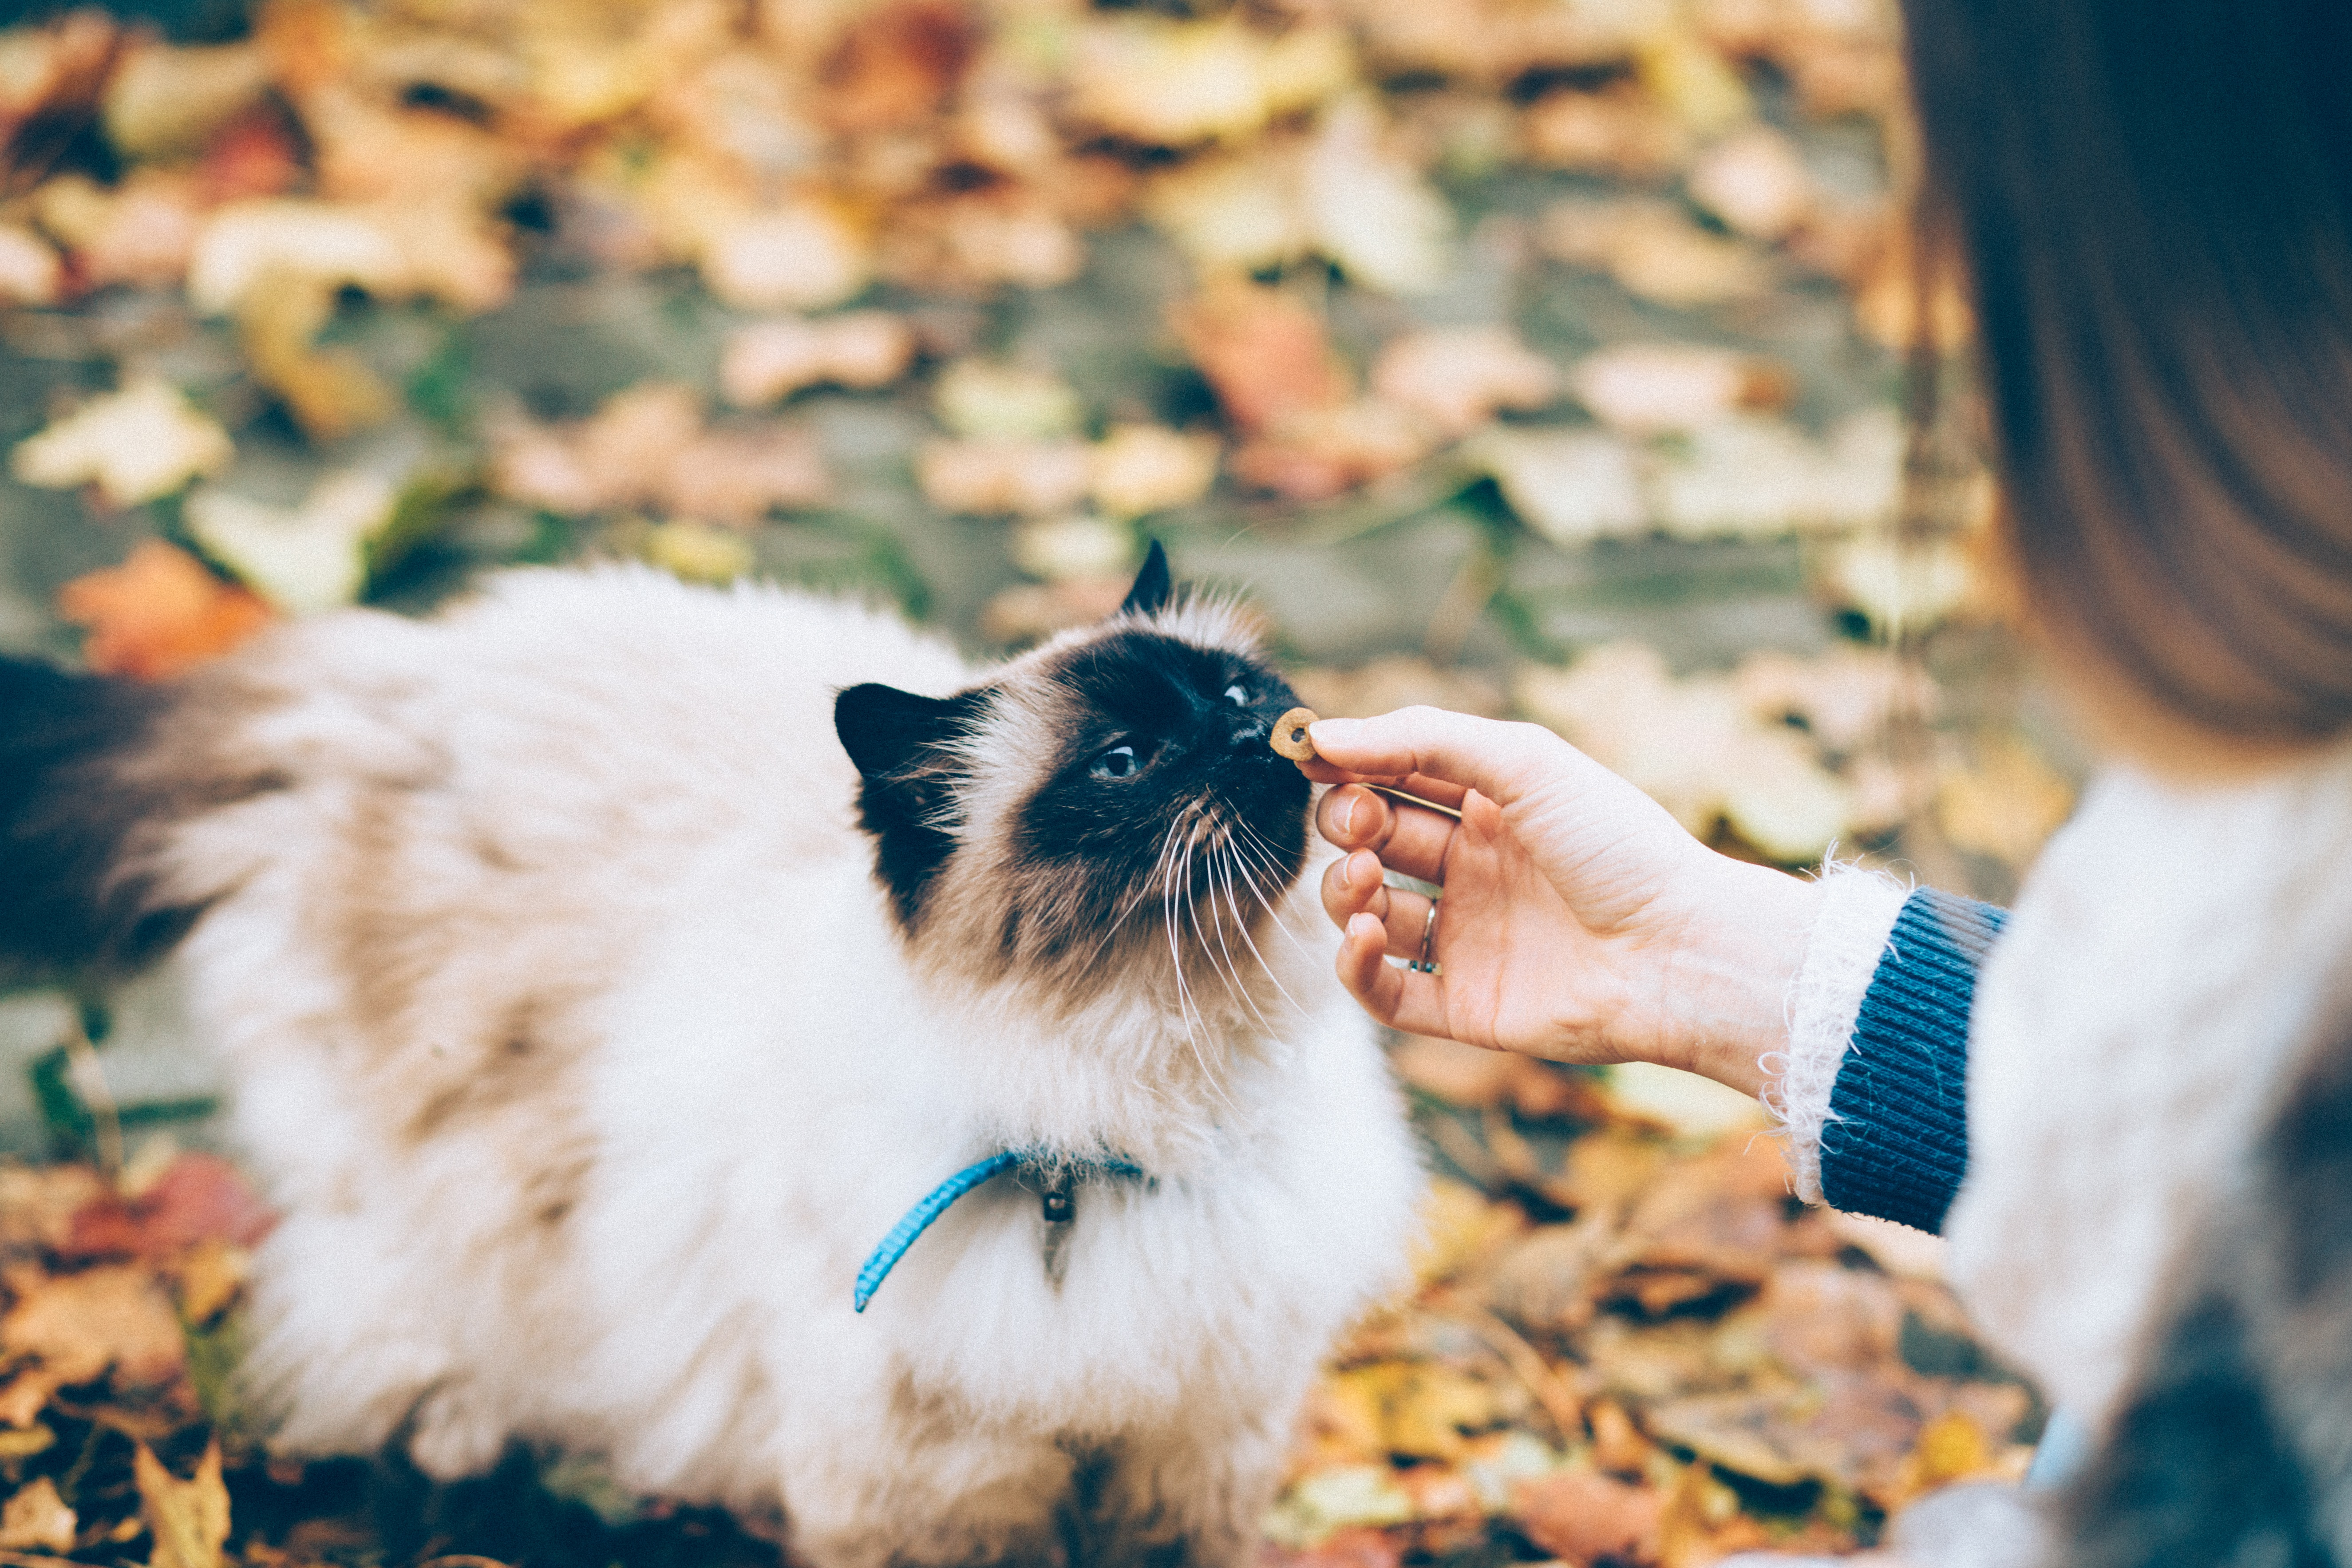 Woman feeding a cat a treat | 10 Eco-Friendly Holiday Gift Ideas for Cat Lovers